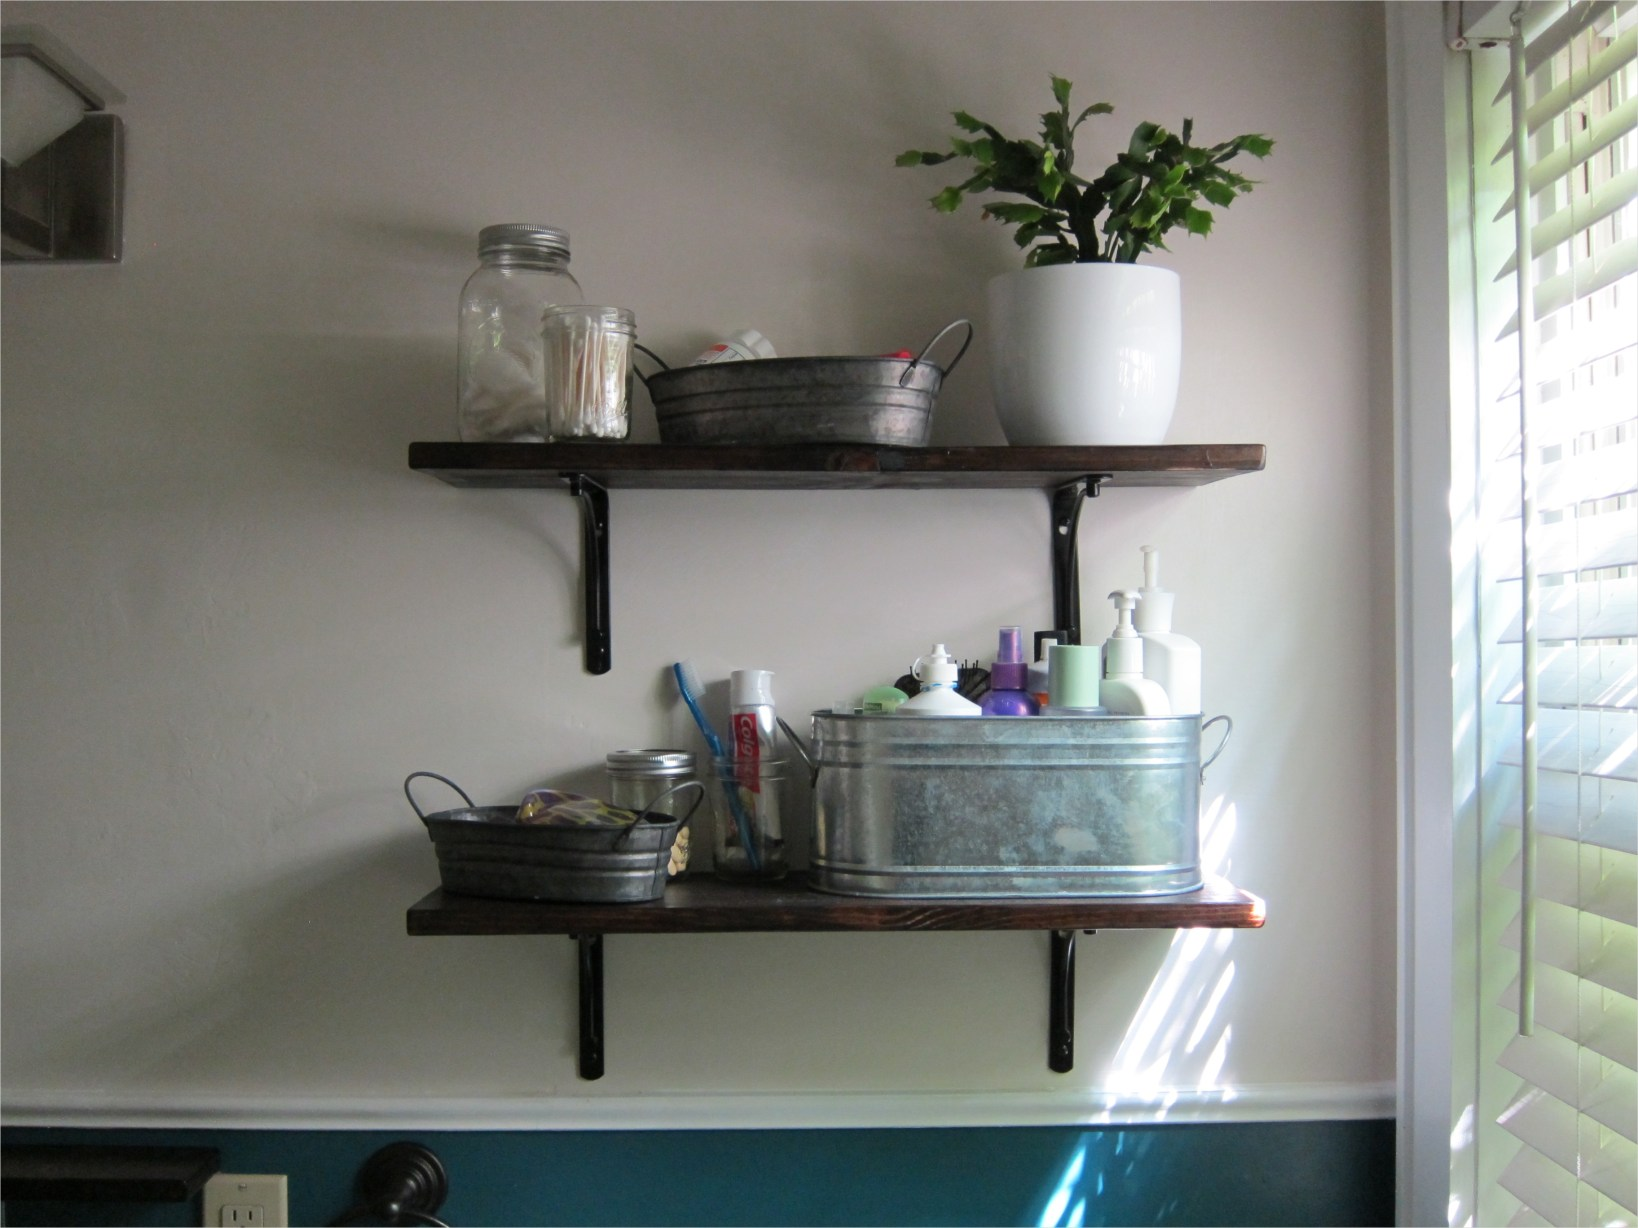 Bathroom Shelves Decorating Ideas 56 Bathroom Shelf Decorating Ideas Bathroom Shelf Ideas Best to Her with Bathroom Shelf 4